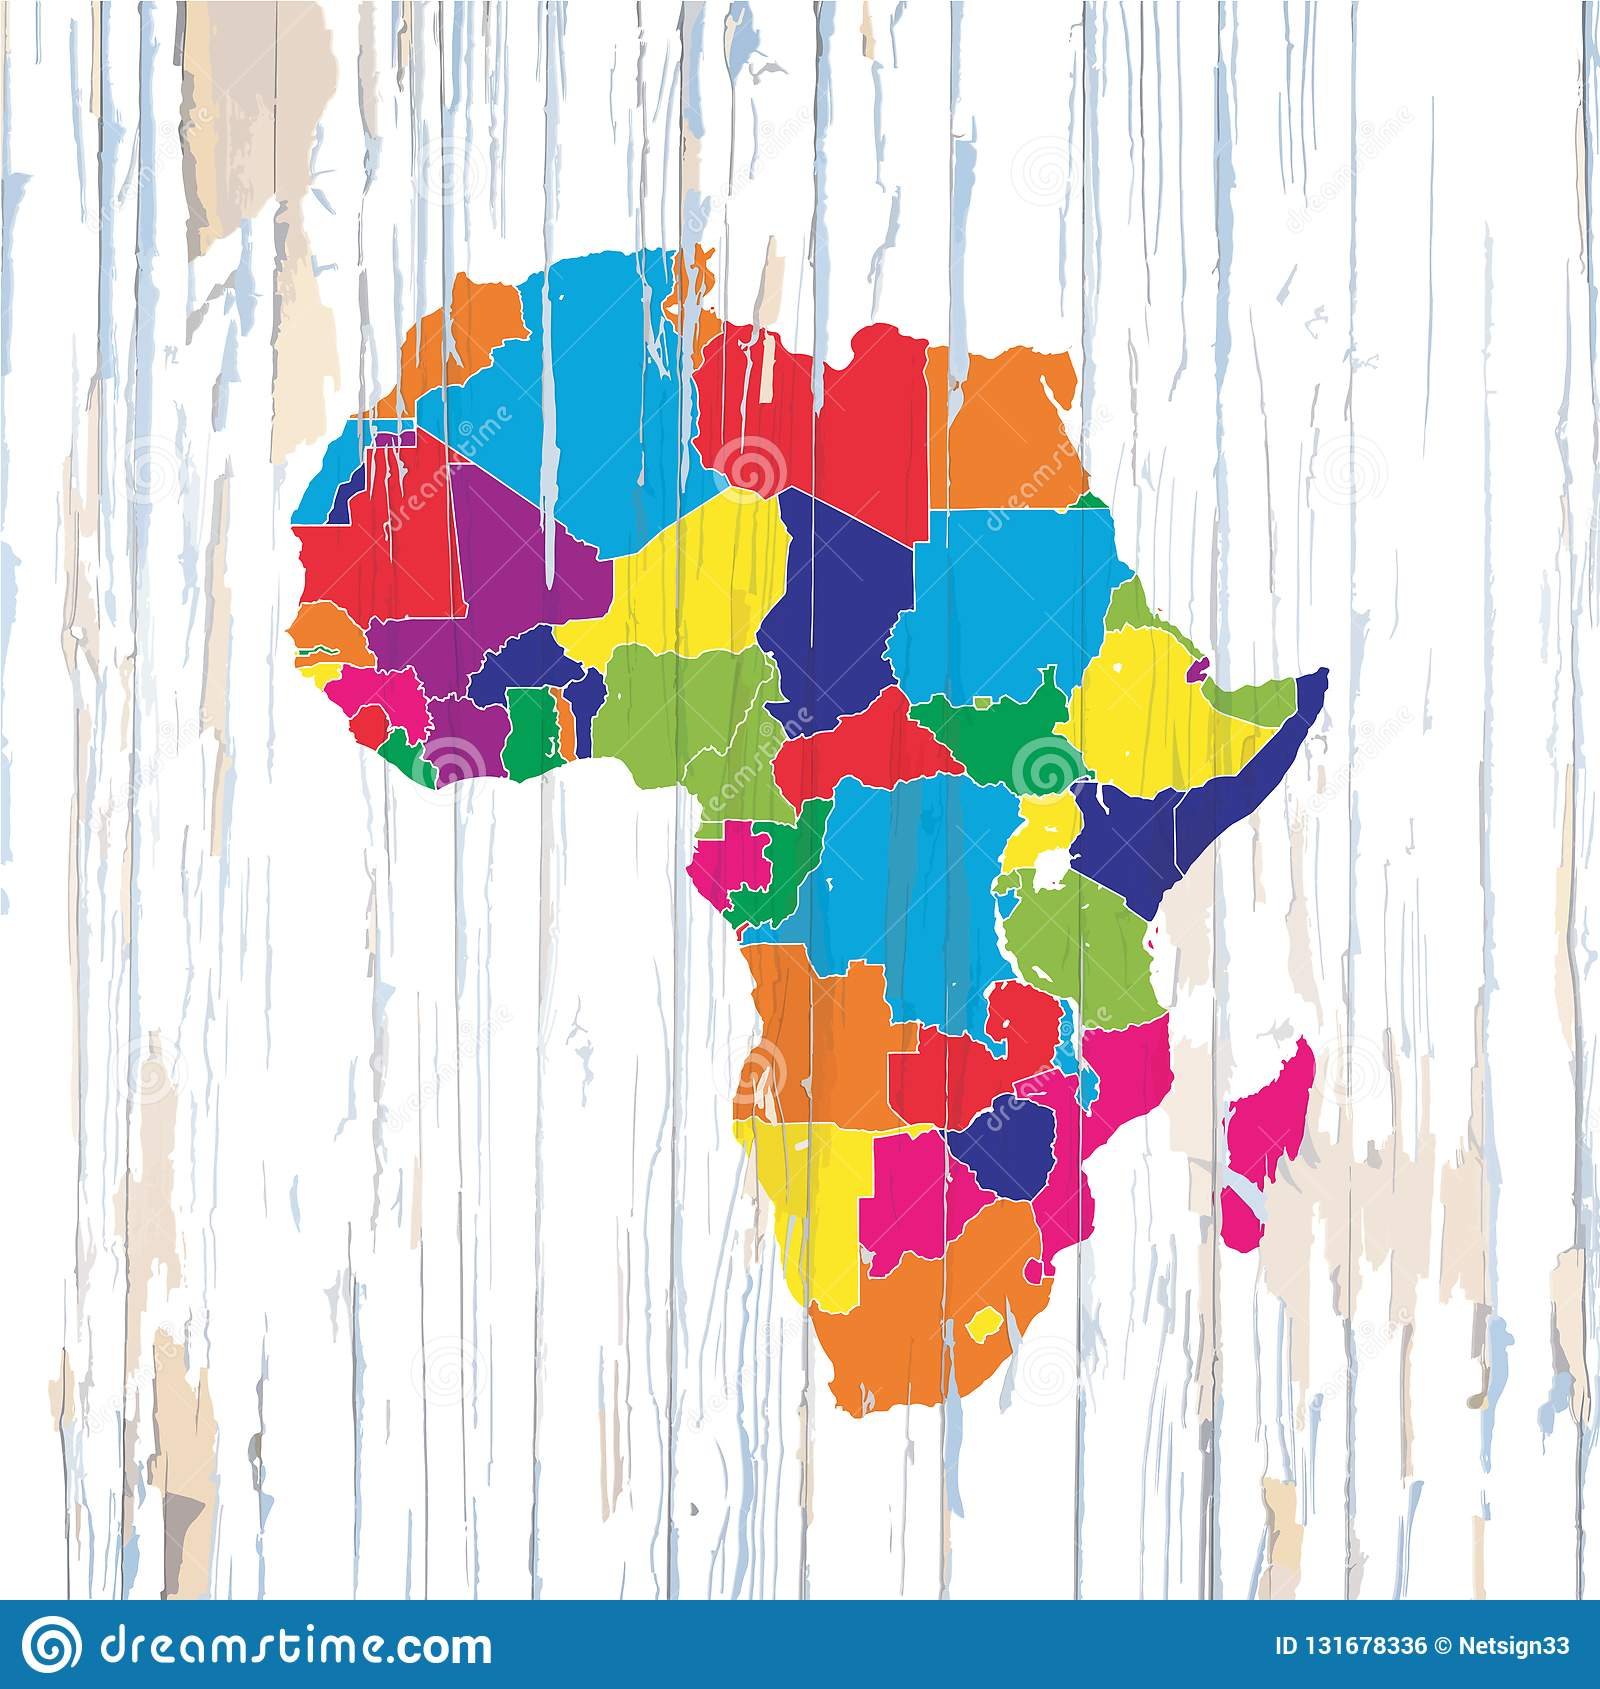 Colorful Map Of African Countries Stock Vector ... on map of south american countries, horn of africa countries, map of africa only, map of ancient africa, map of african nations, map of england, asia map with countries, map of caribbean countries, map of europe, map of iraq, map of west africa, map of north america, map of asia, map of world countries, map of kenya, europe map countries, south america countries, africa outline map with countries, map of east africa, world map with countries,